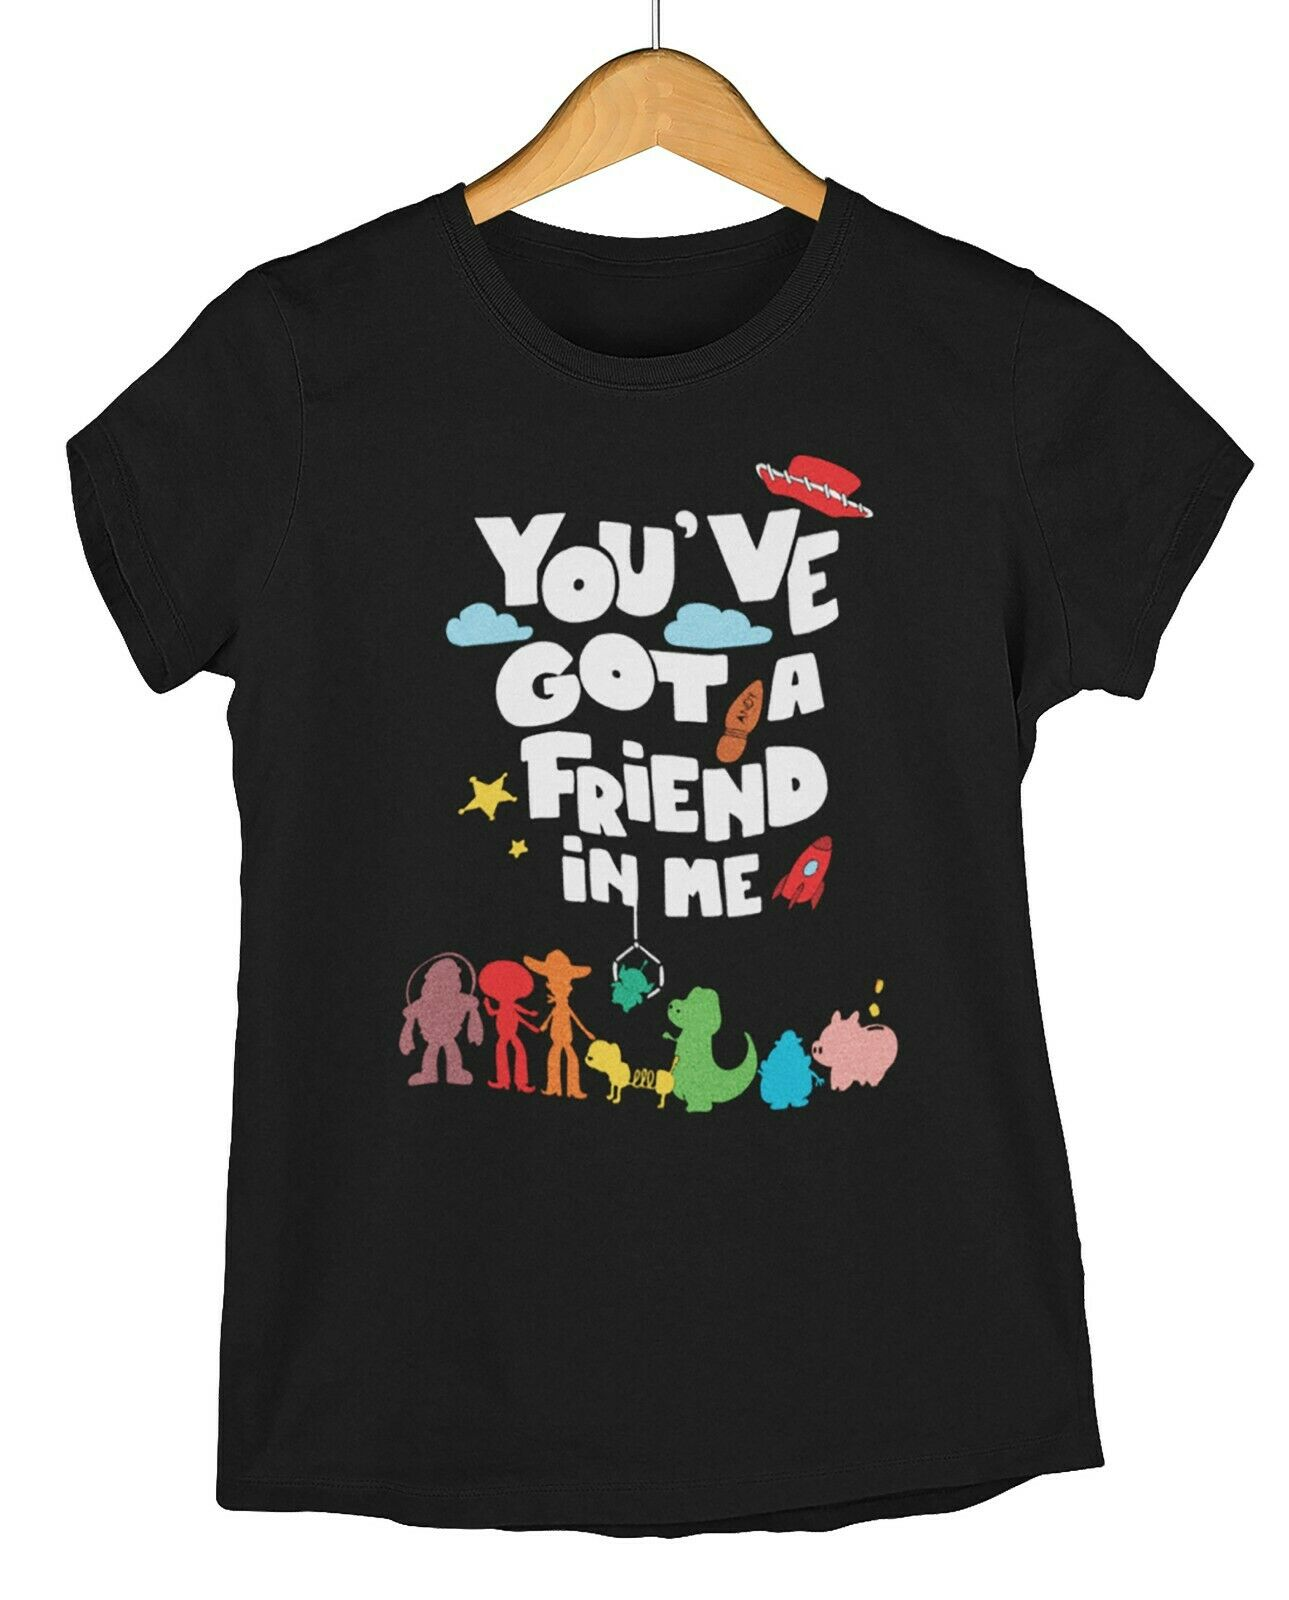 Youve Got A Friend In Me Toy Story Inspired Unisex T-Shirt Shirt Men